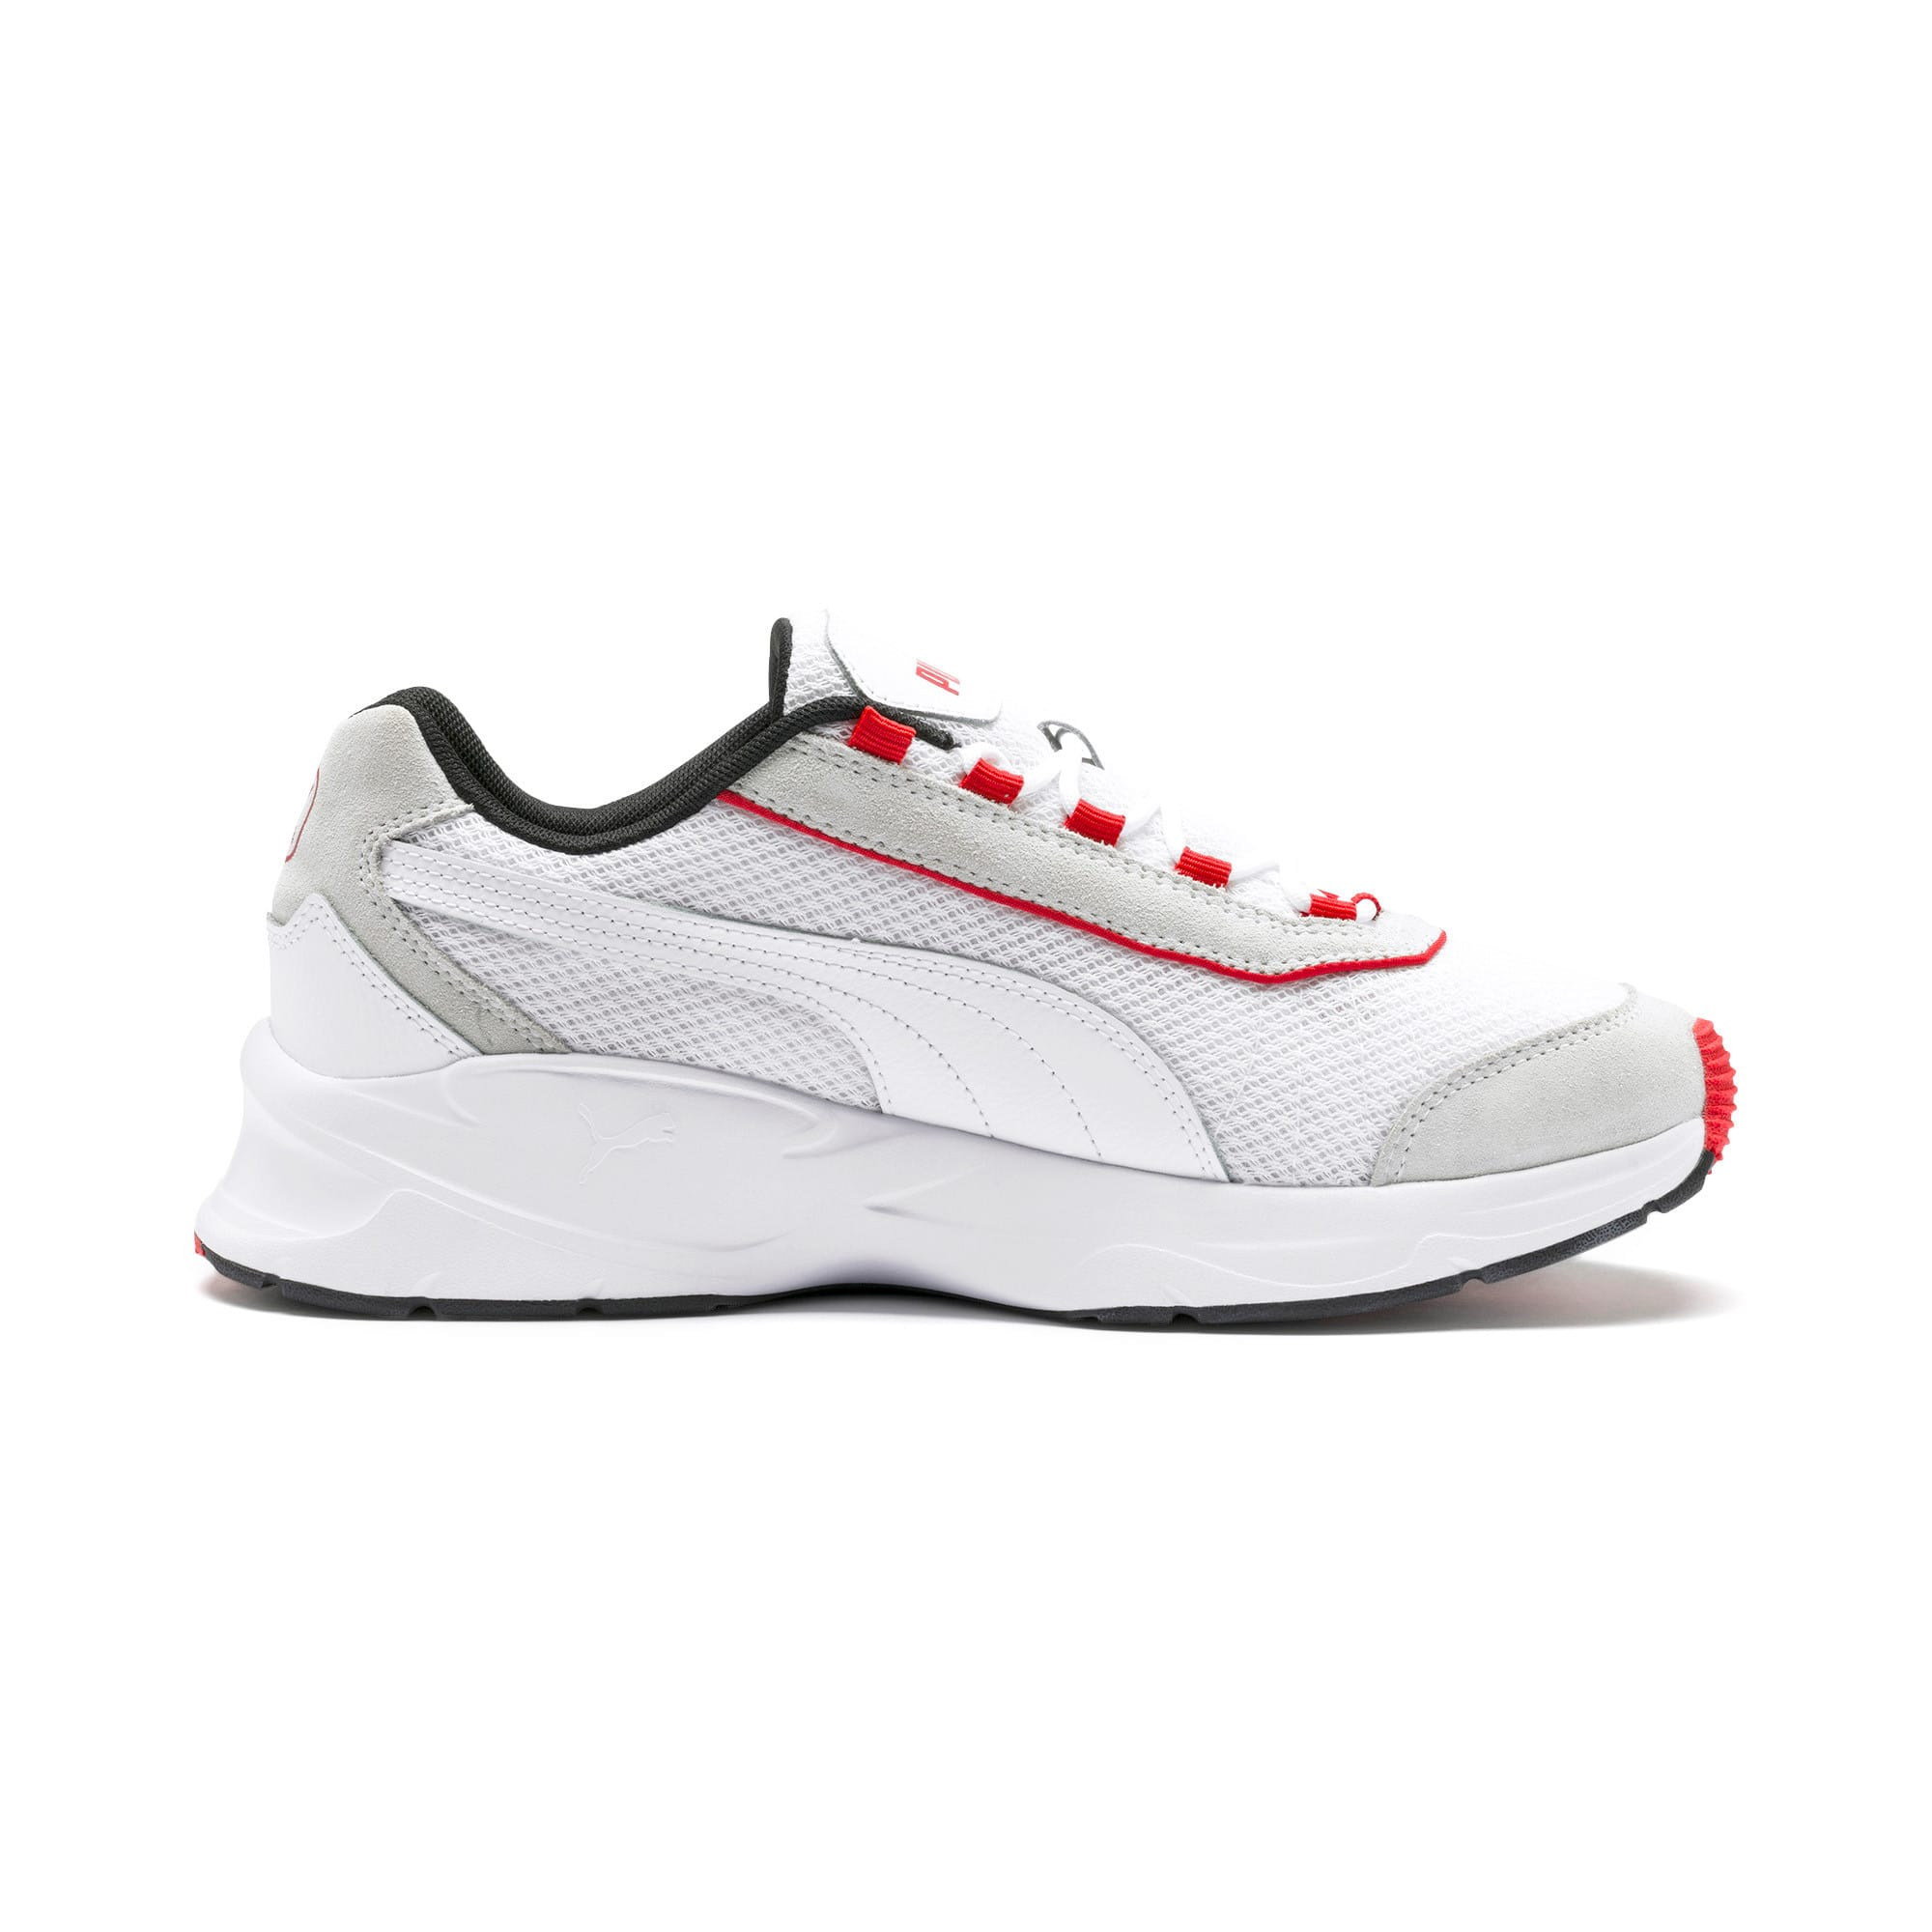 Thumbnail 6 of Nucleus Lux Trainers, Puma White-High Risk Red, medium